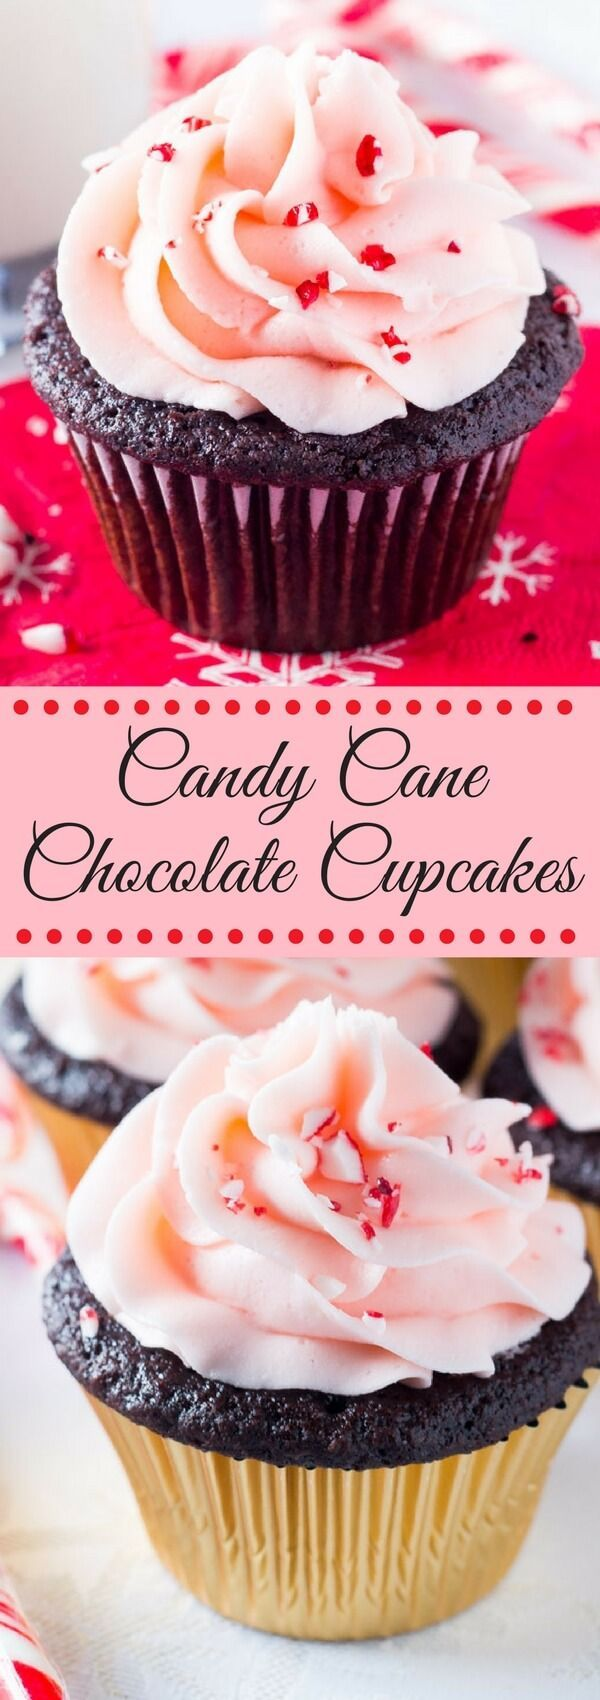 These Candy Cane Chocolate Cupcakes are the perfect Christmas cupcake. Super moist chocolate cupcakes are topped with peppermint frosting…